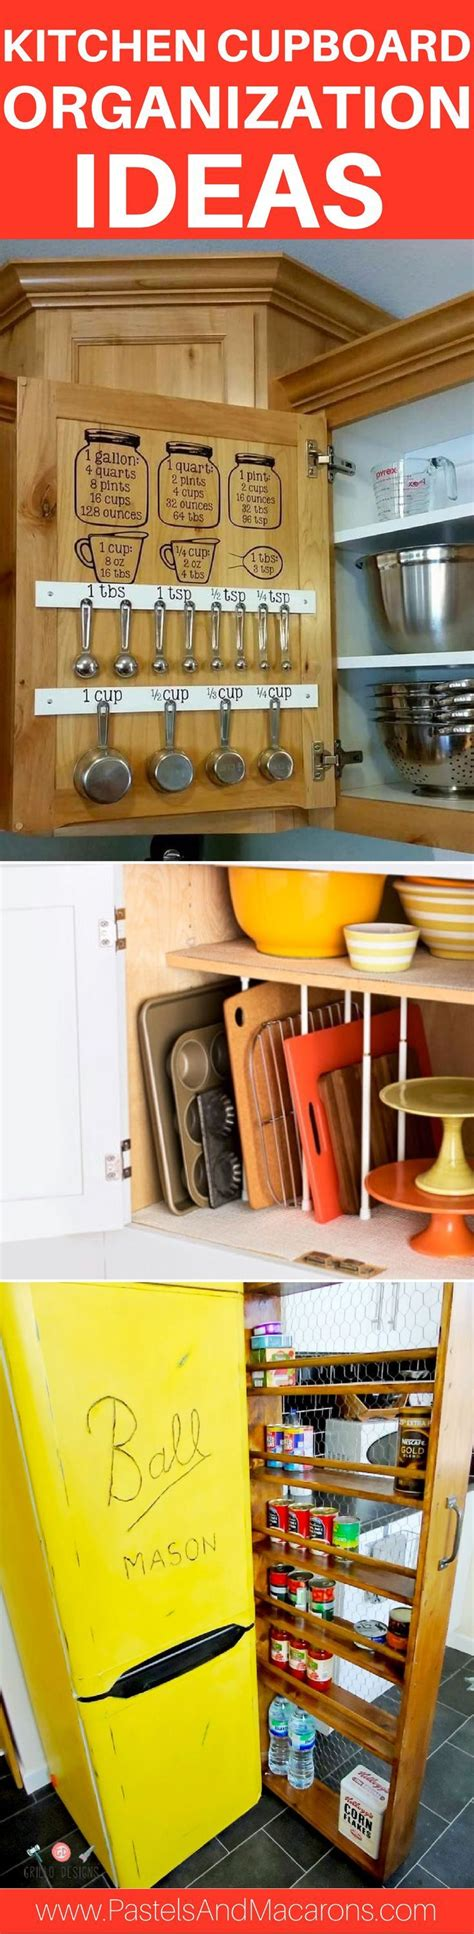 kitchen cupboard organizing ideas diy kitchen cupboard organizing ideas and hacks to help